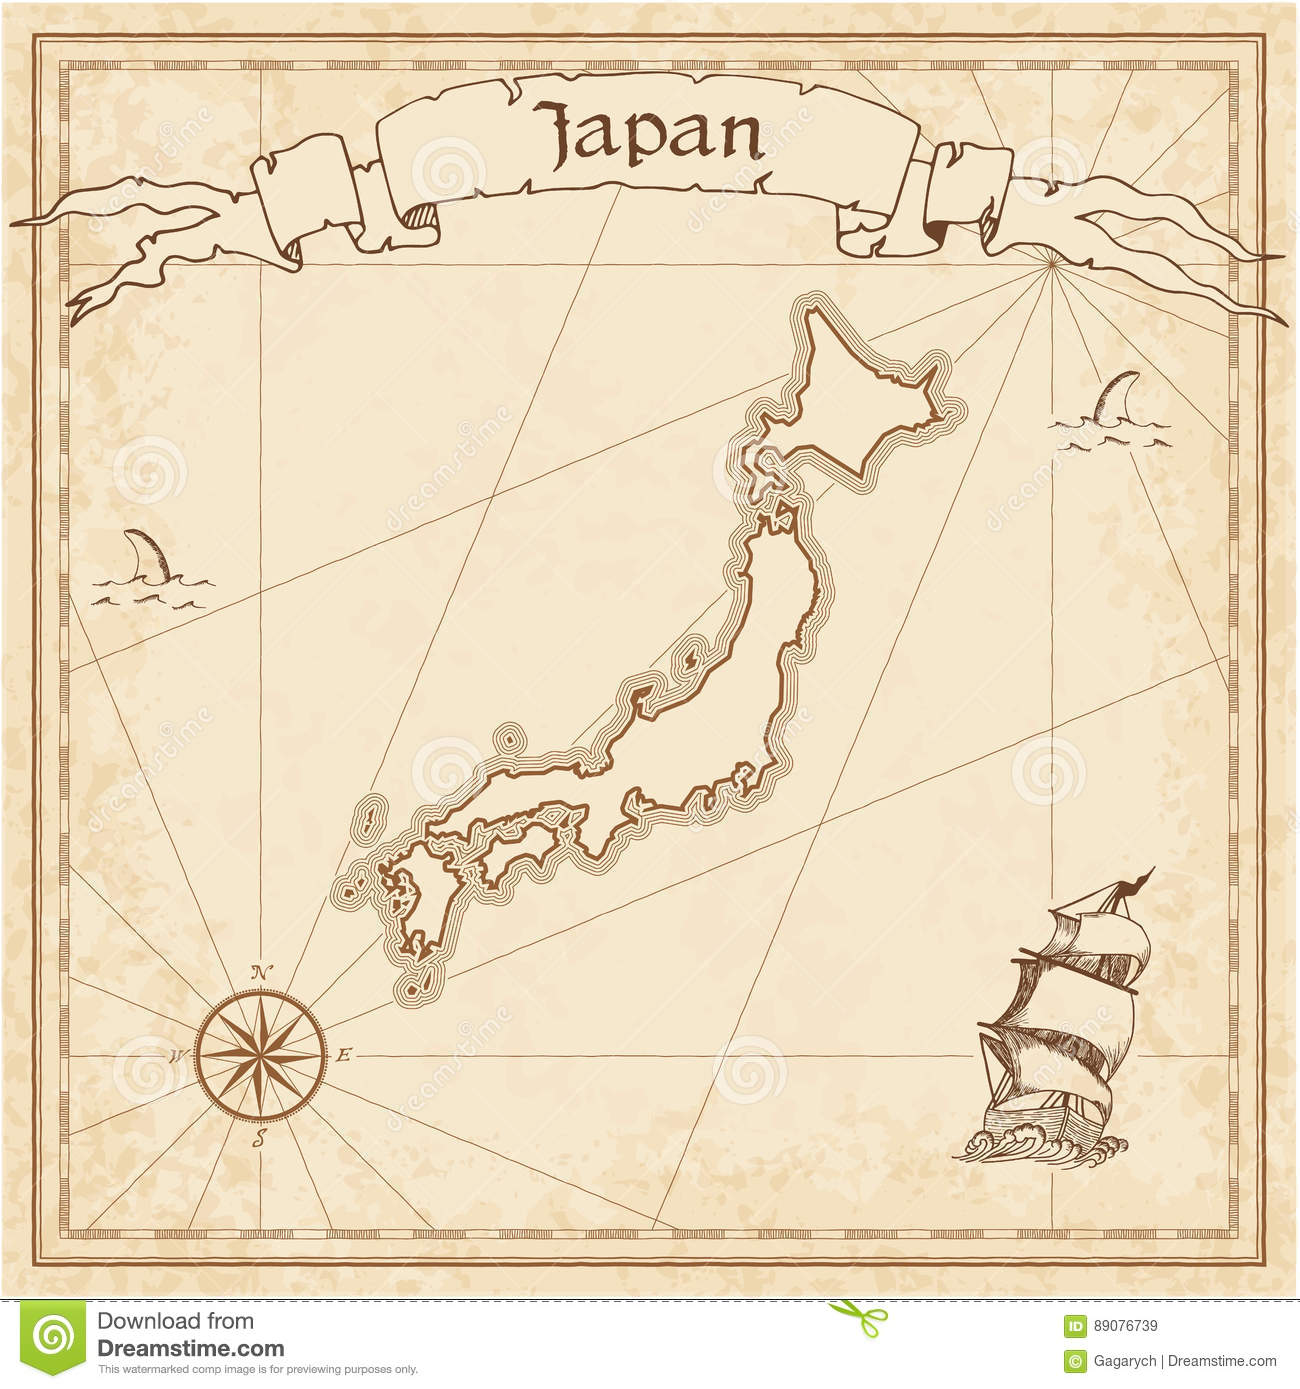 Map Of America And Japan.Japan Old Treasure Map Stock Vector Illustration Of America 89076739